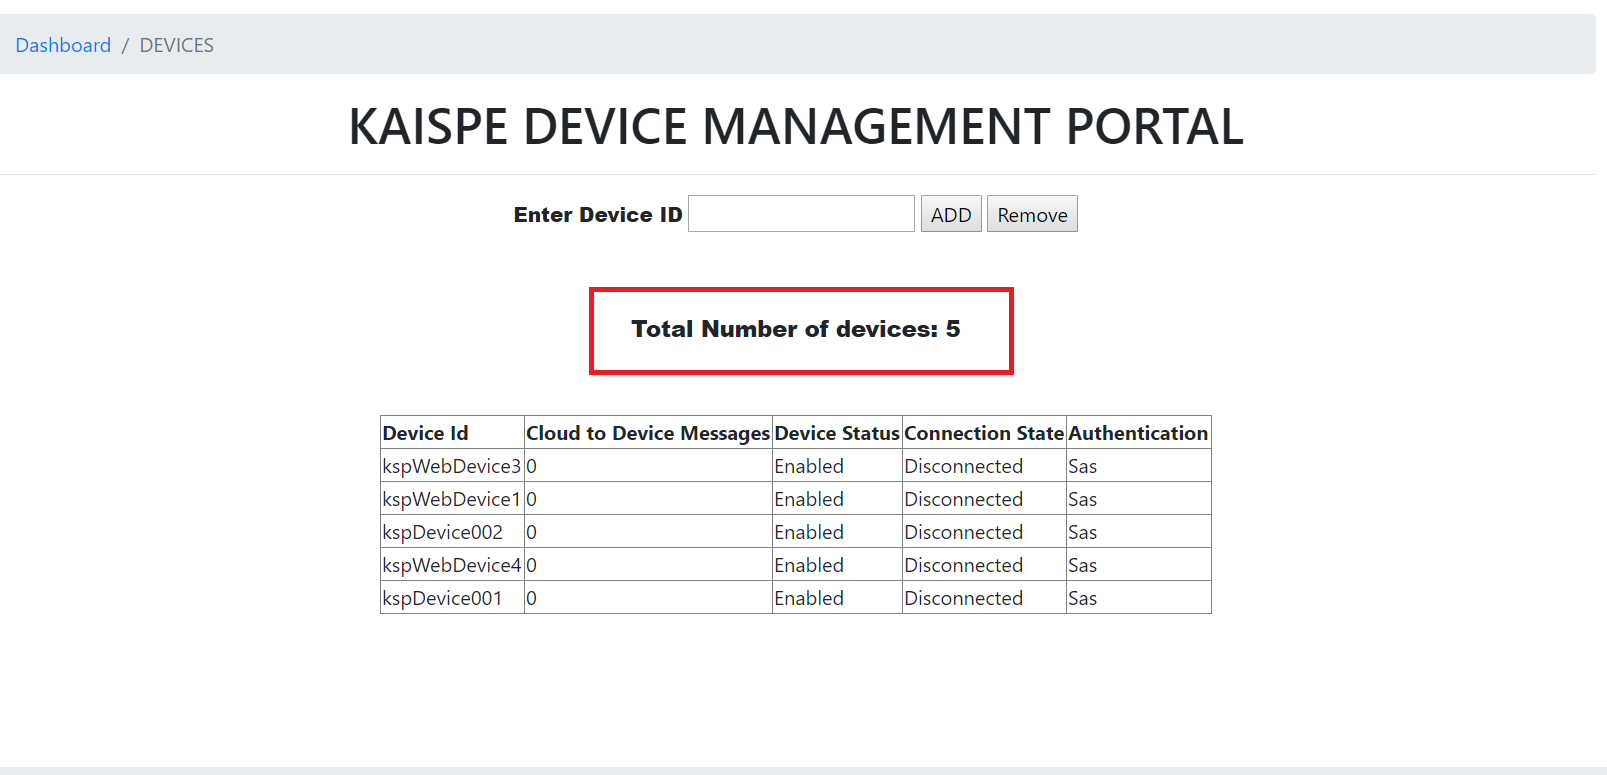 remove2 - Microsoft Azure IoT Device Management using .NET based Web Application